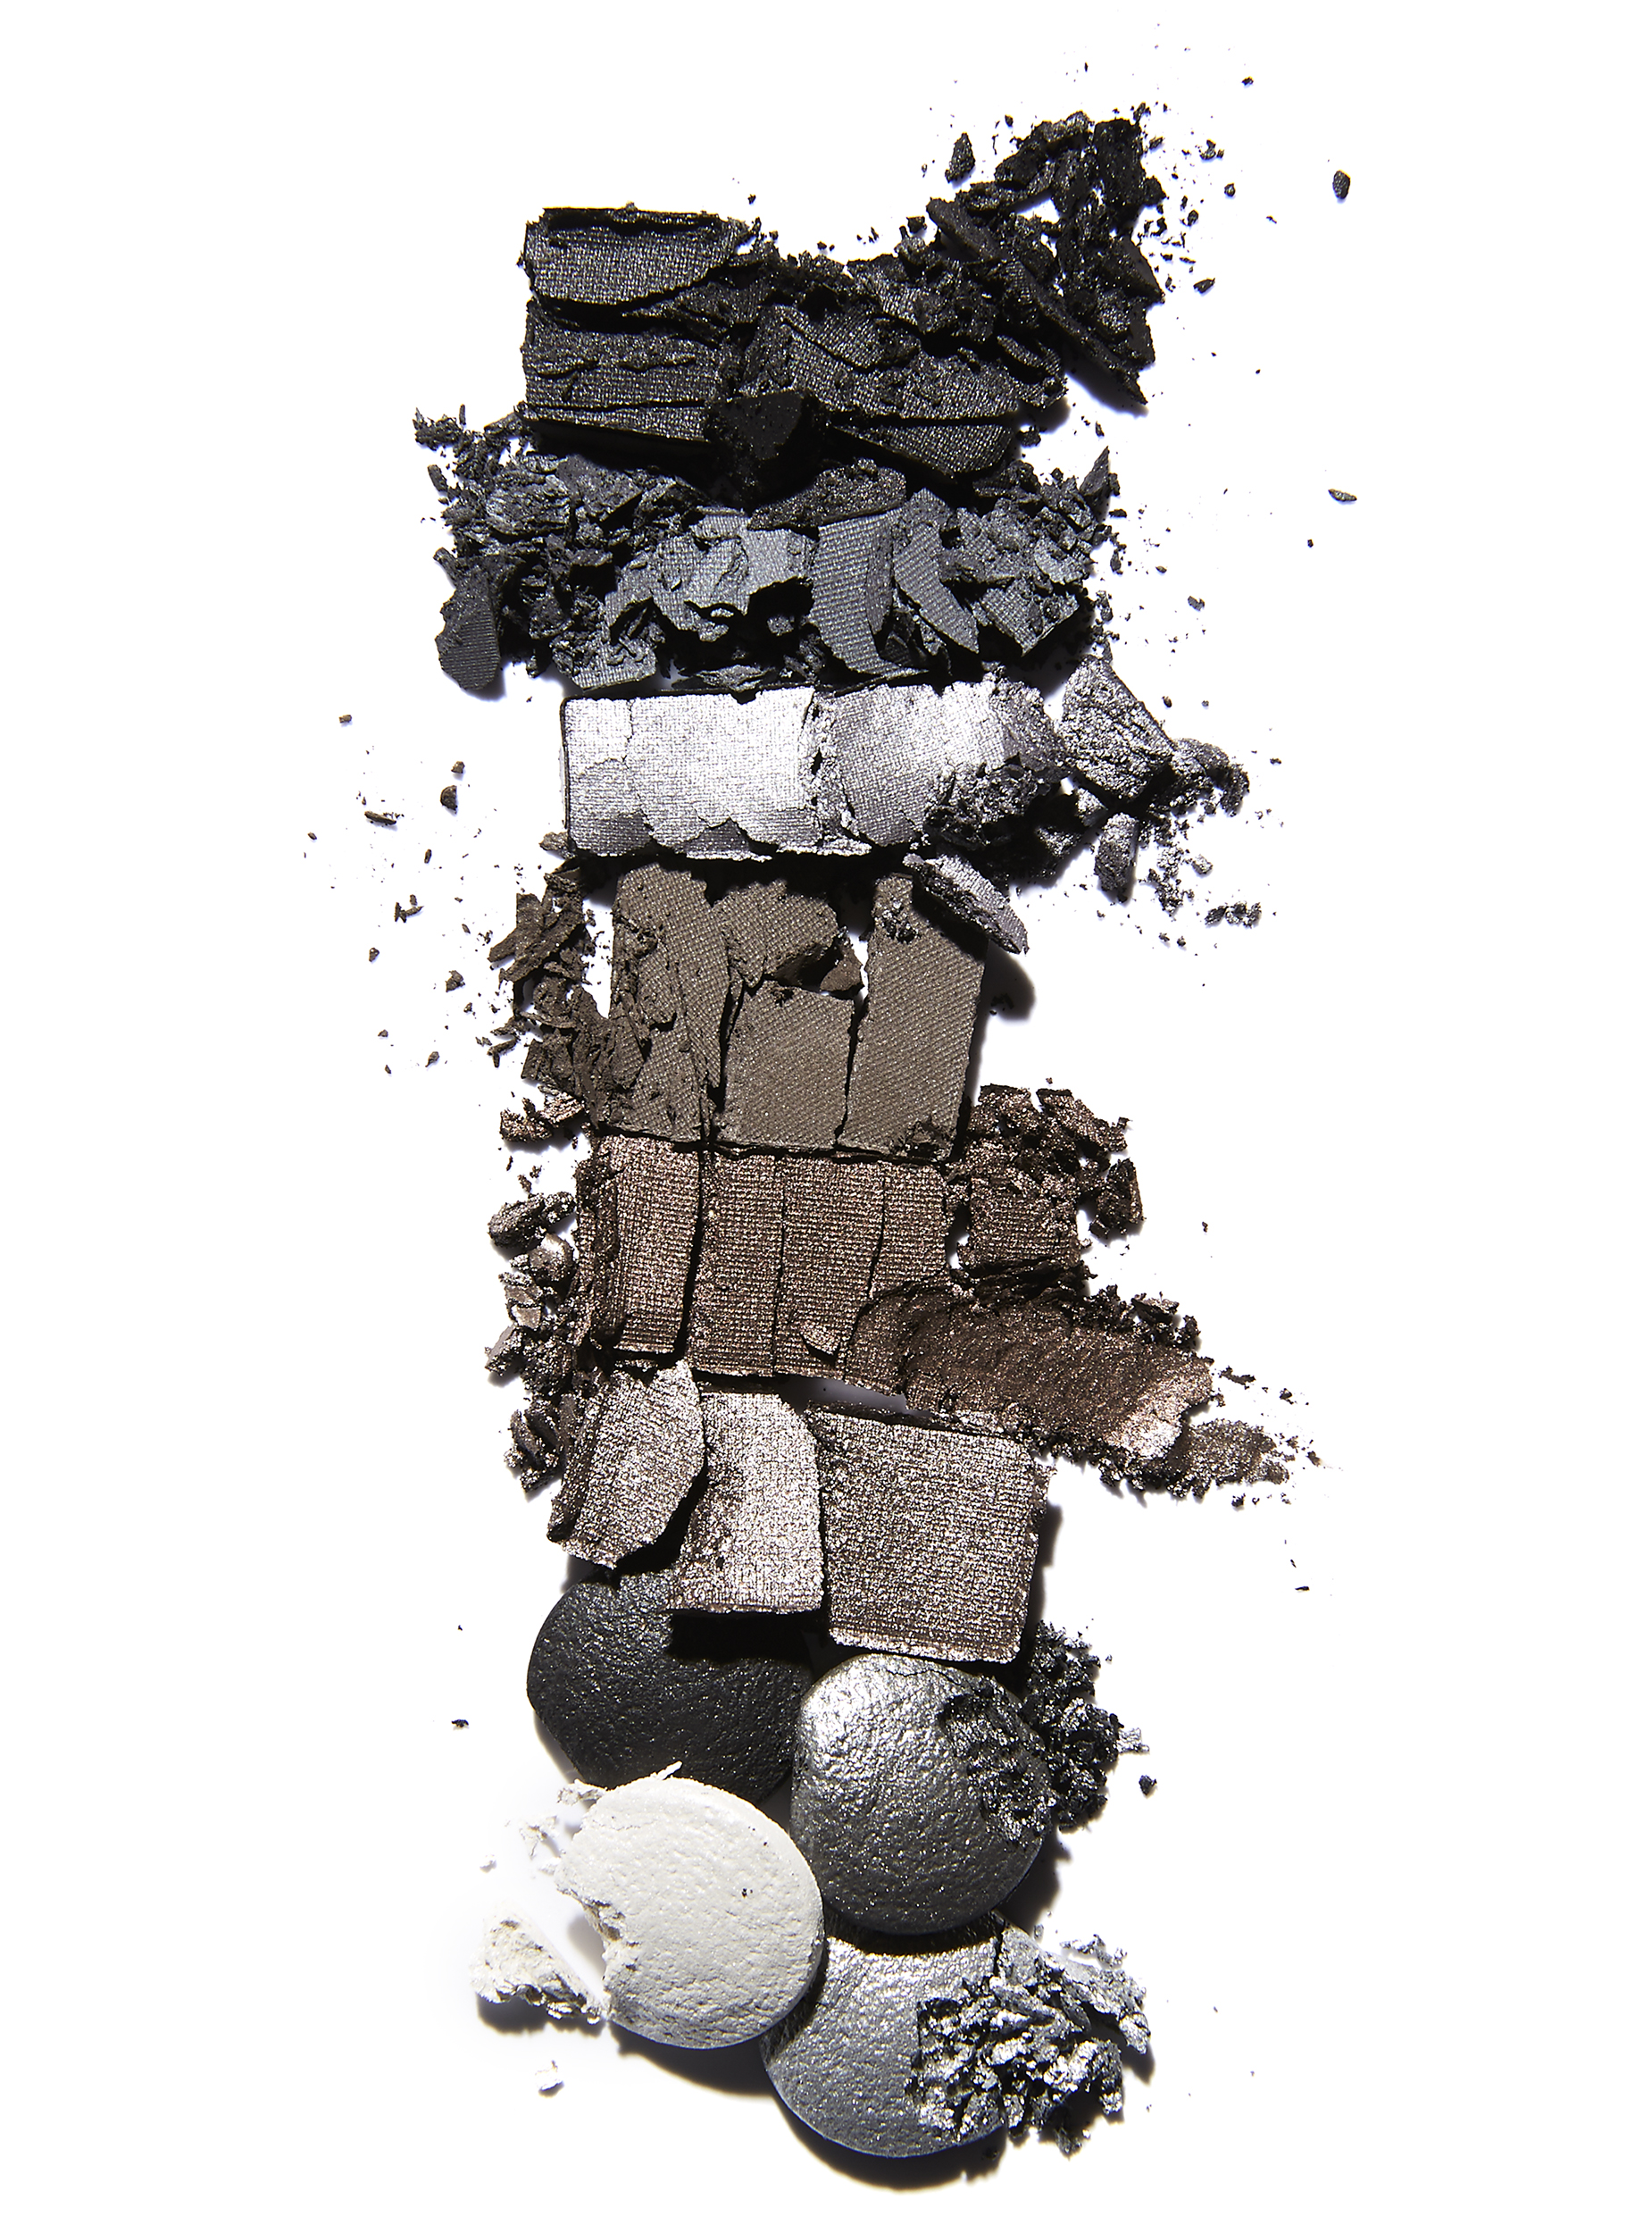 Metallic-EyeShadow.jpg